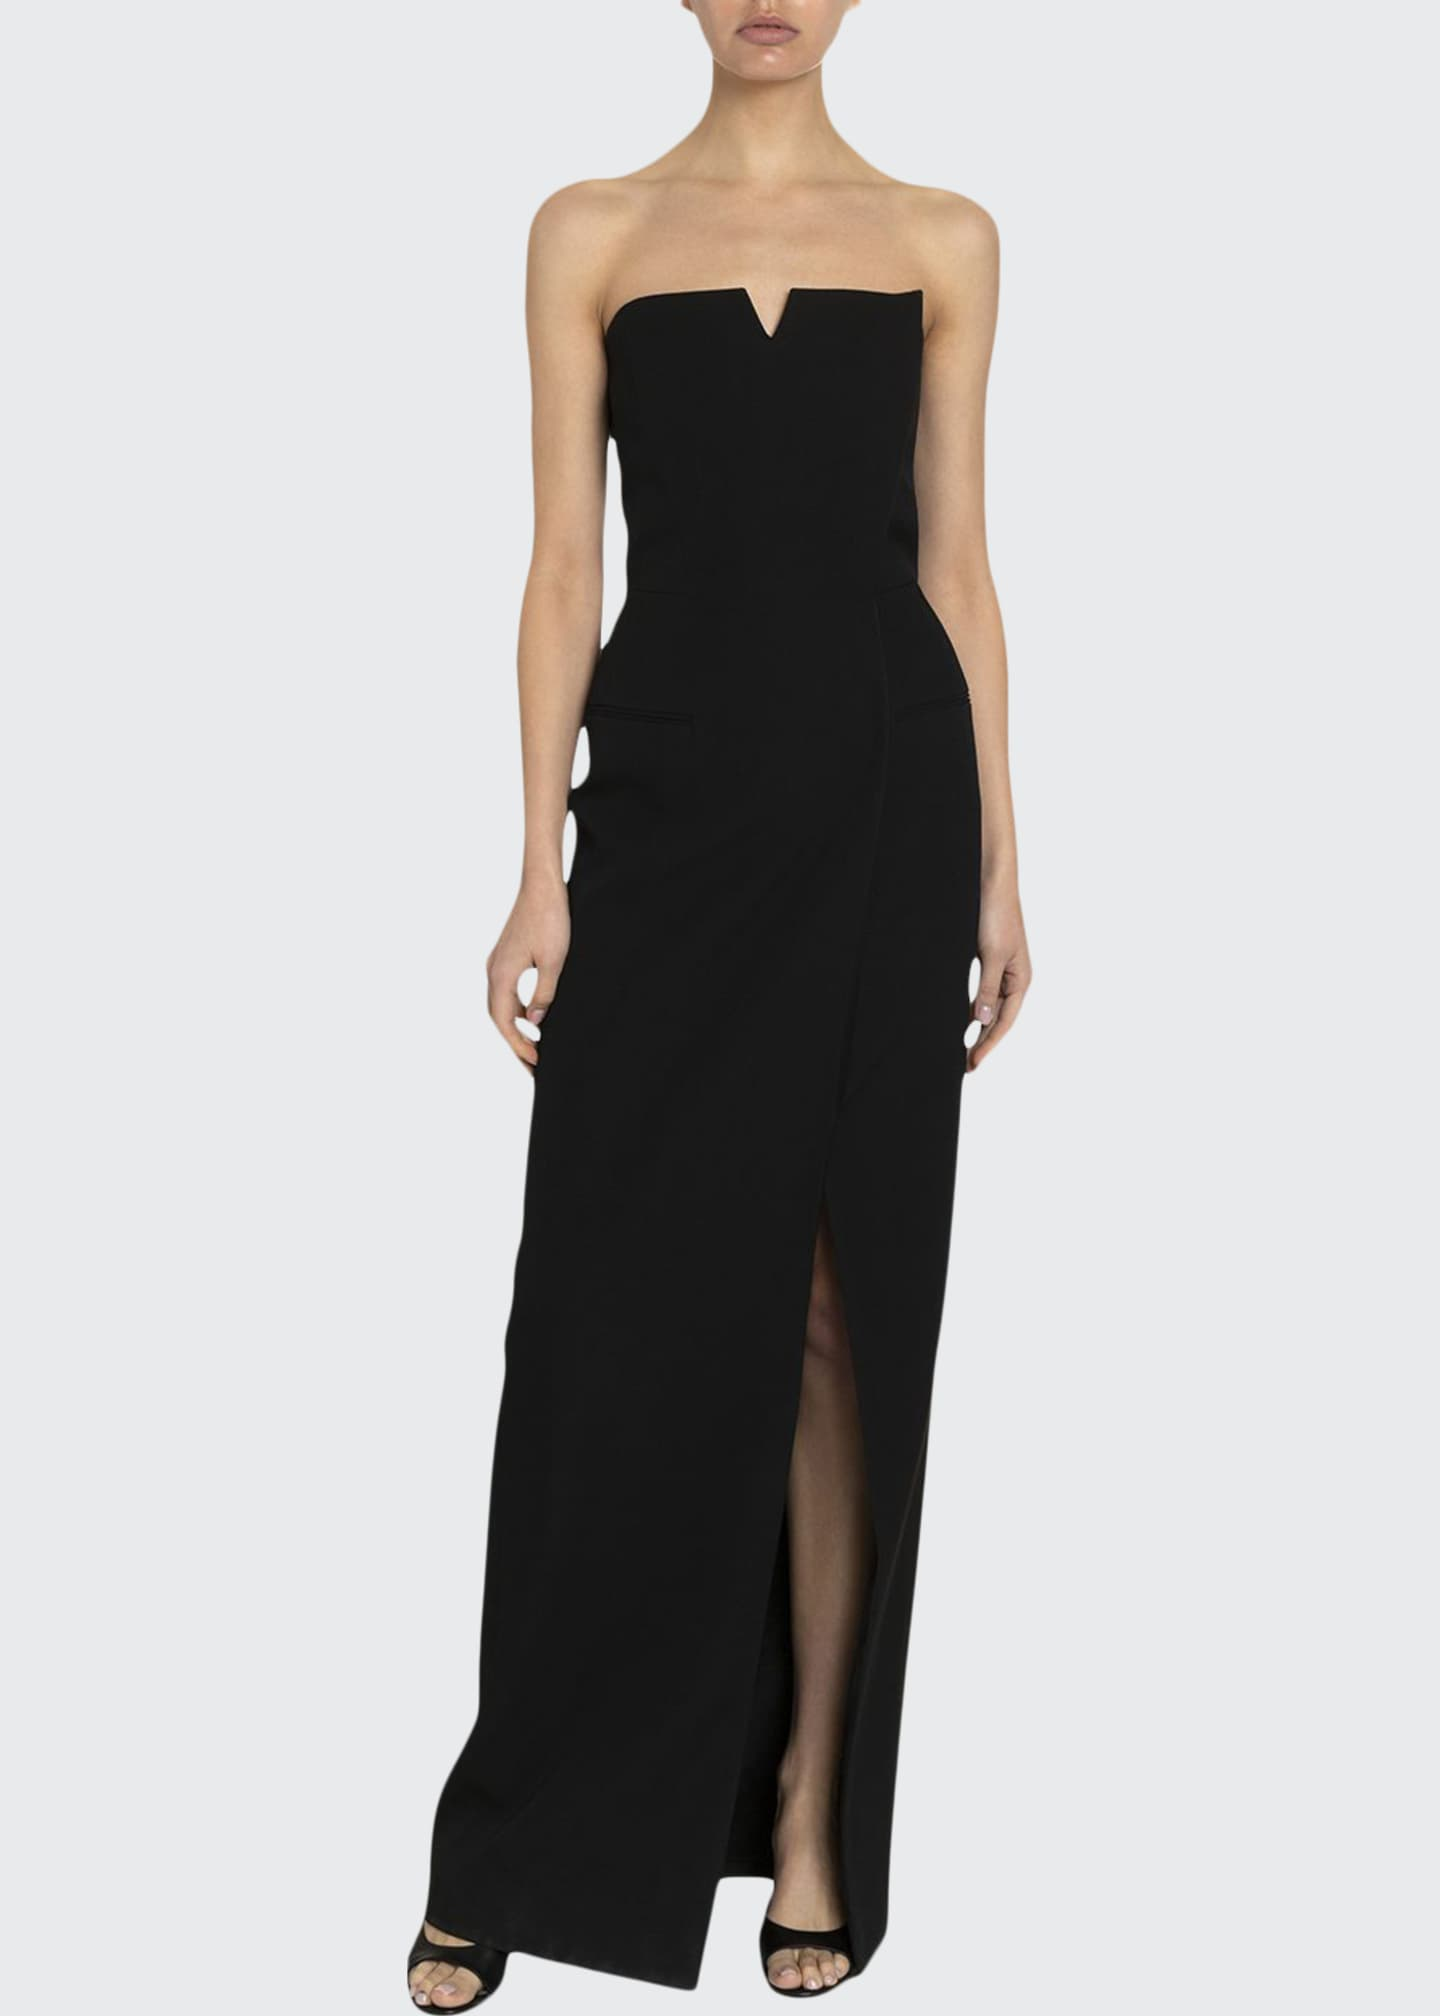 Givenchy Graine de Poudre Strapless Bustier Fitted Dress